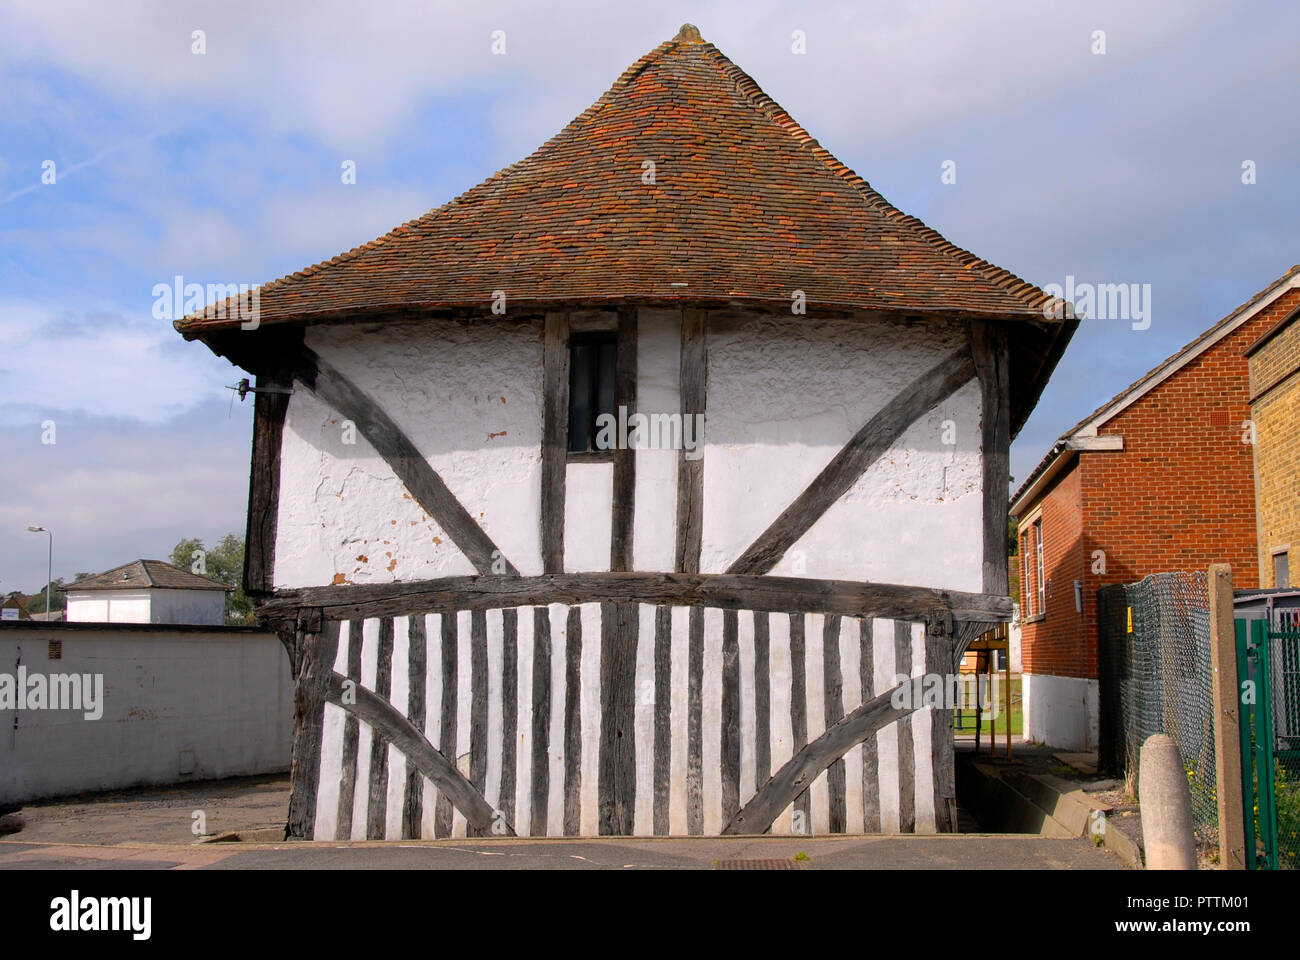 Old 15th century roadside barn, Faversham, Kent, England - Stock Image